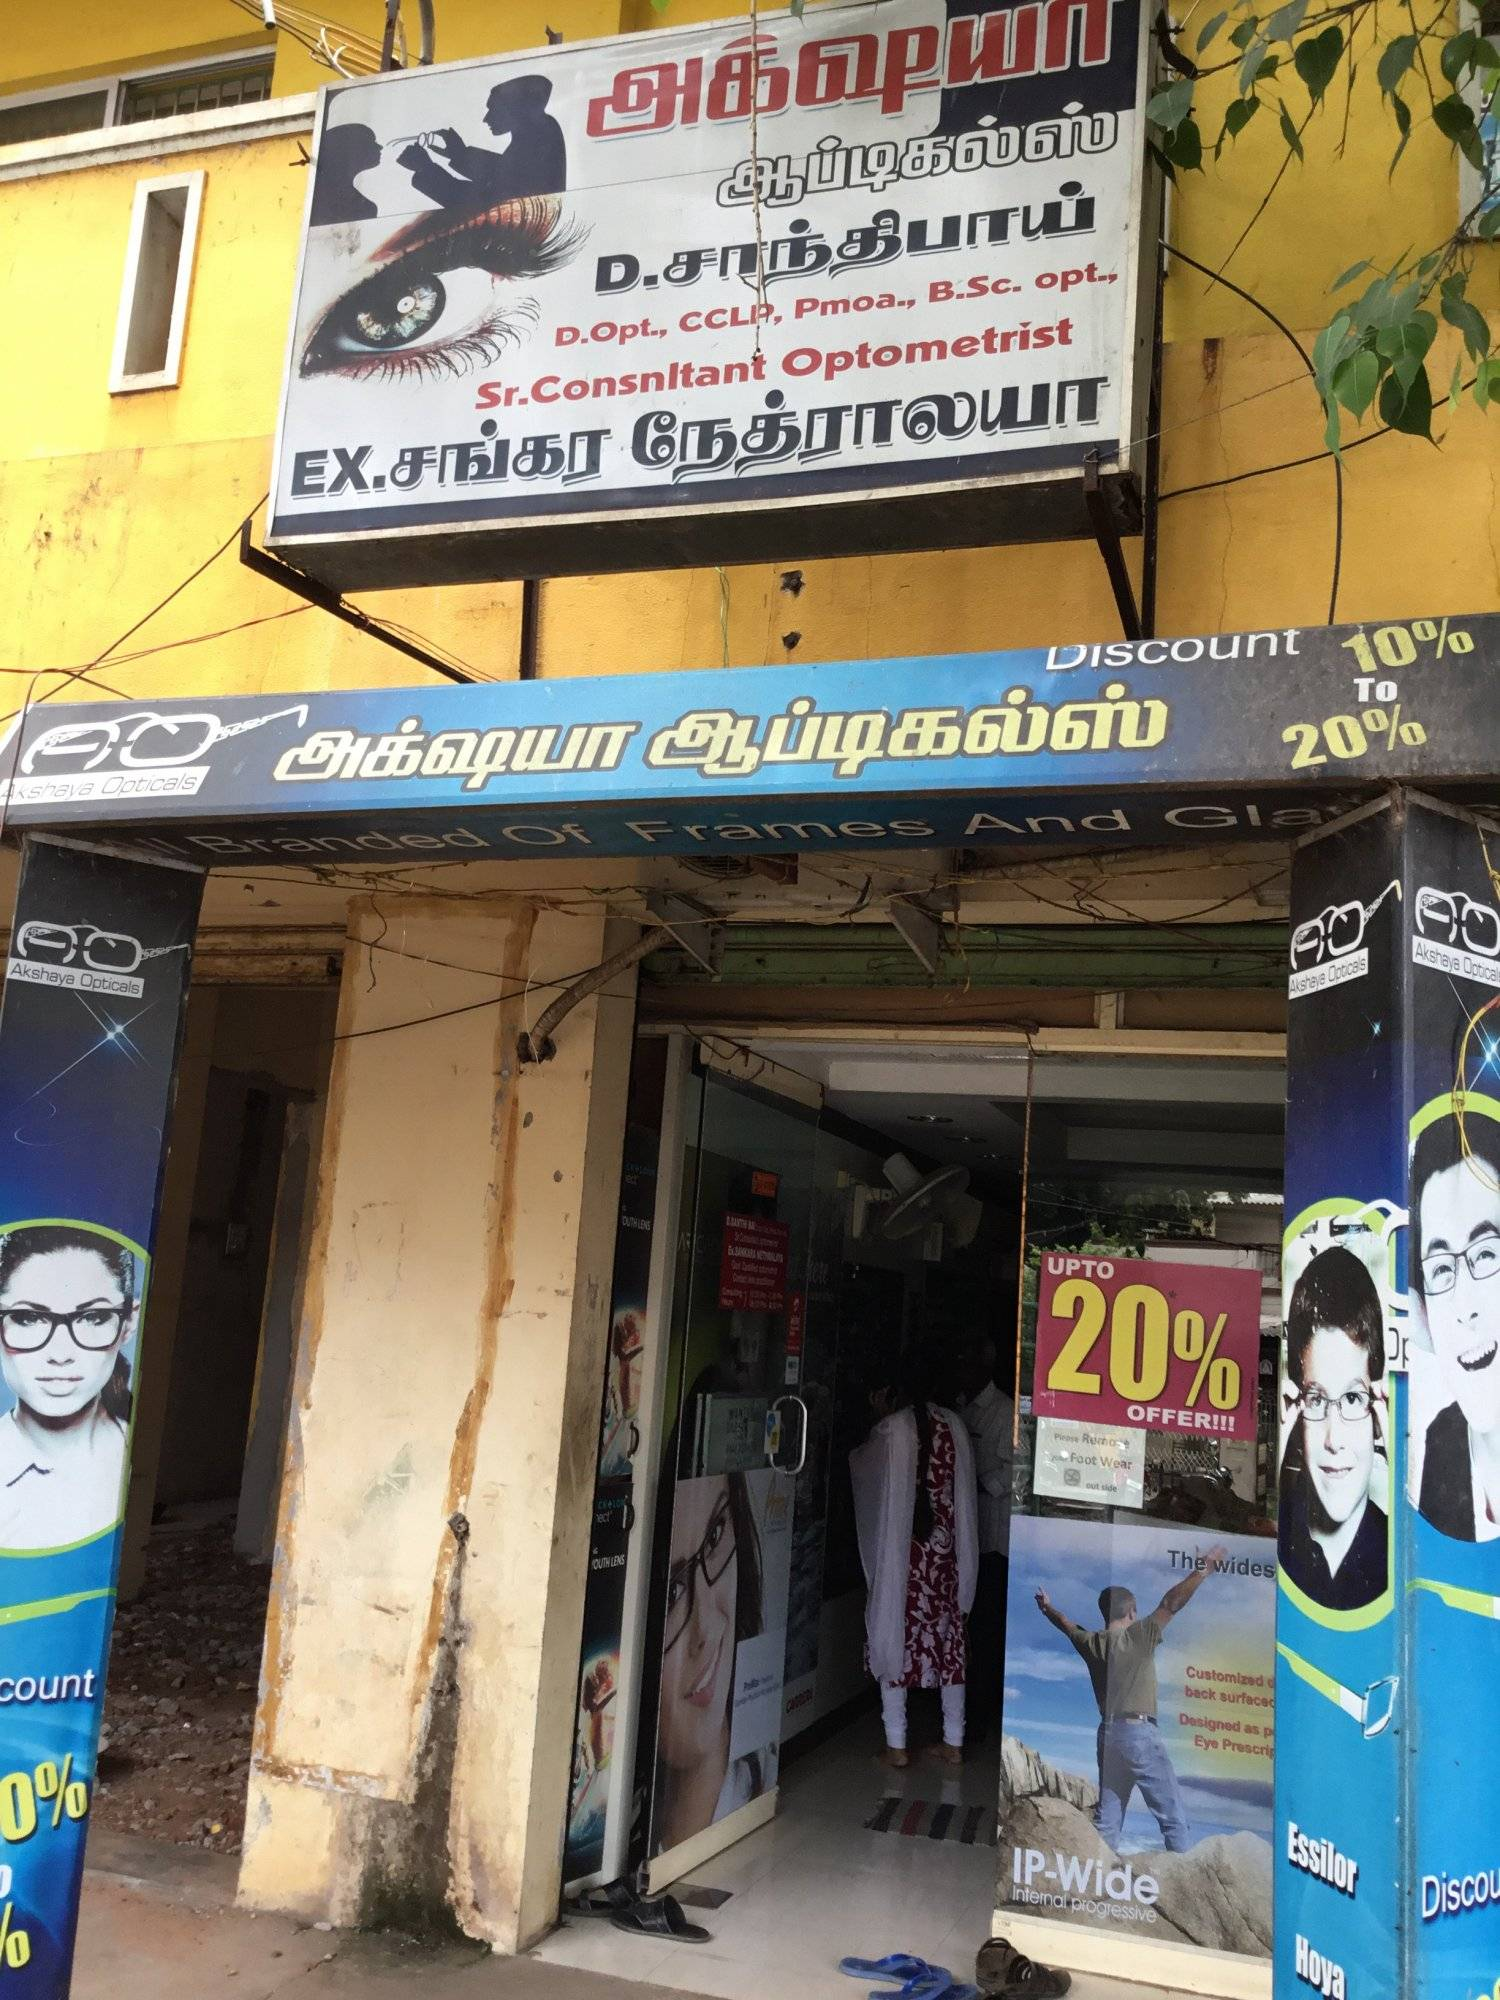 fe85796ad1 Top 100 Ray ban sunglass Dealers in Ambattur - Best Ray ban store ...